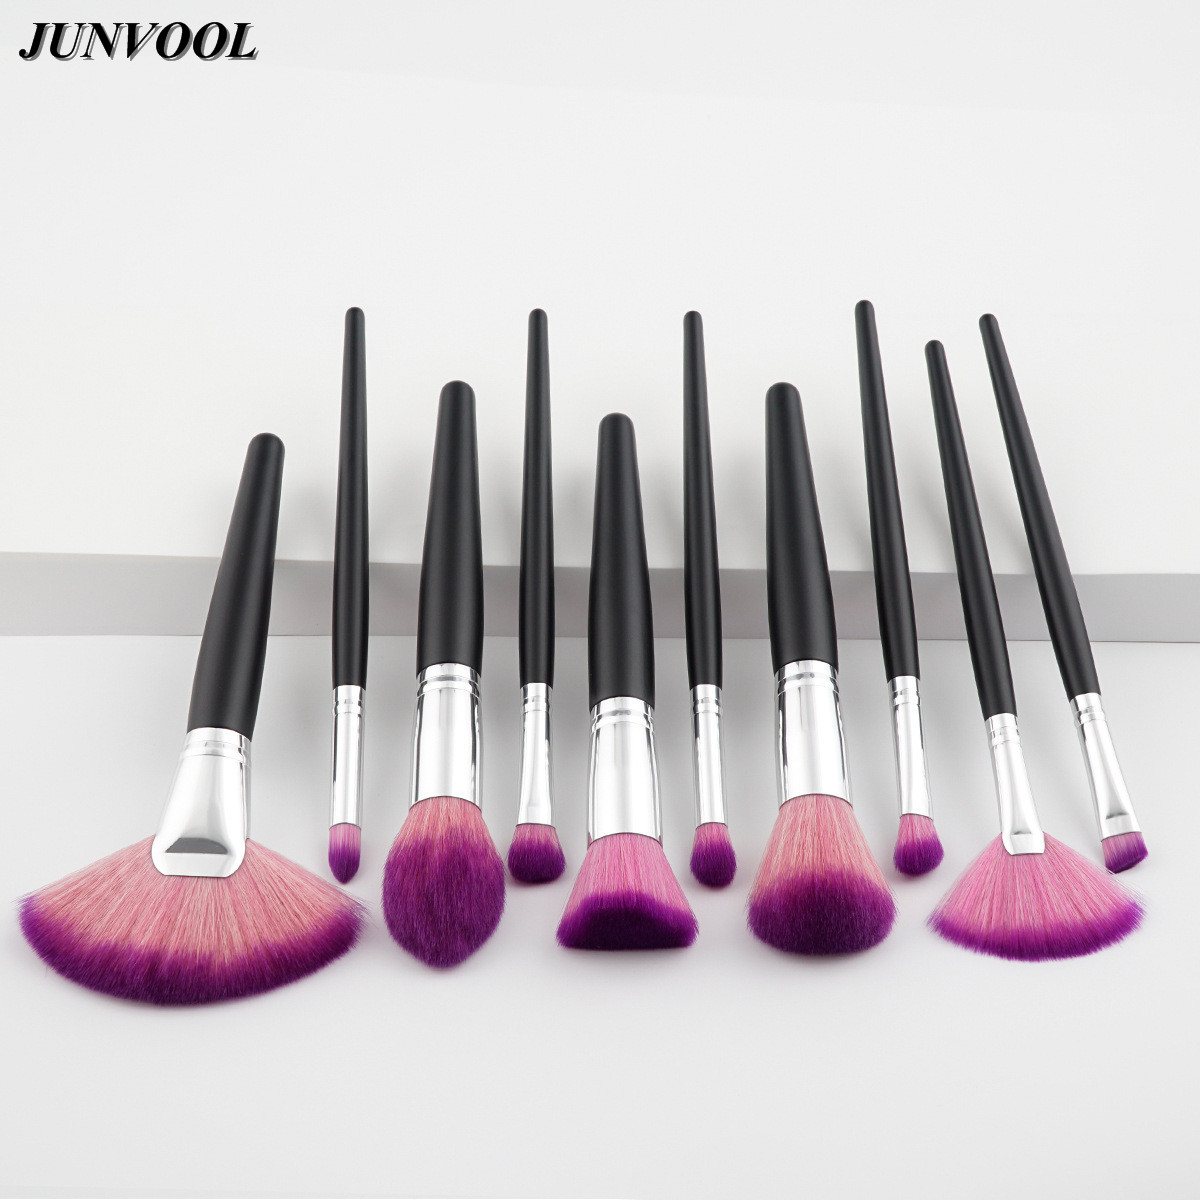 Black Silver Fan Makeup Brush 10pcs Professional Make Up Brushes Set Purple Blending Powder Foundation Eyebrow Eye Contour Brush 10pcs tooth brush shape oval makeup brush set multipurpose makeup brushes professional foundation powder brush kits make up tool